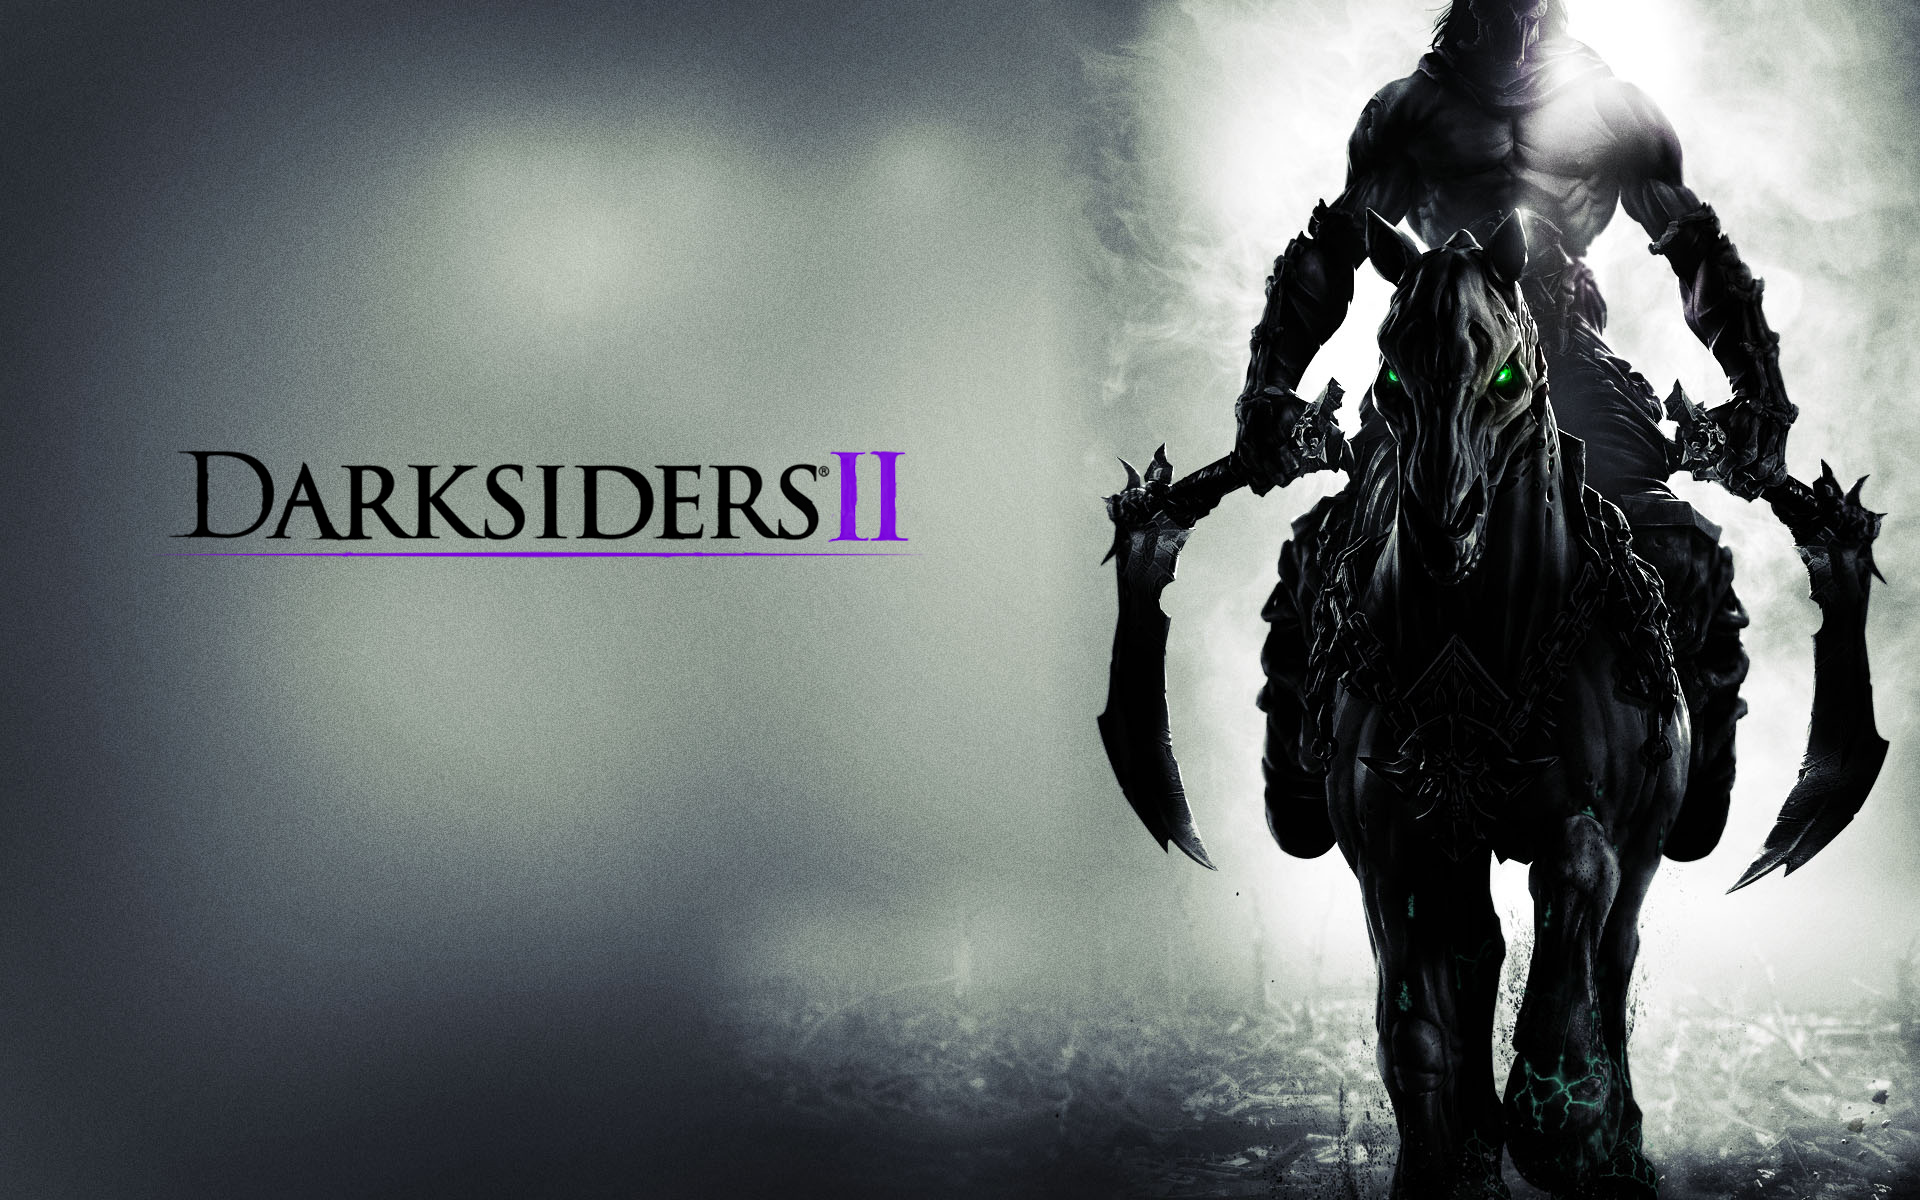 Death Comes For All in the First All-Gameplay Darksiders II Trailer